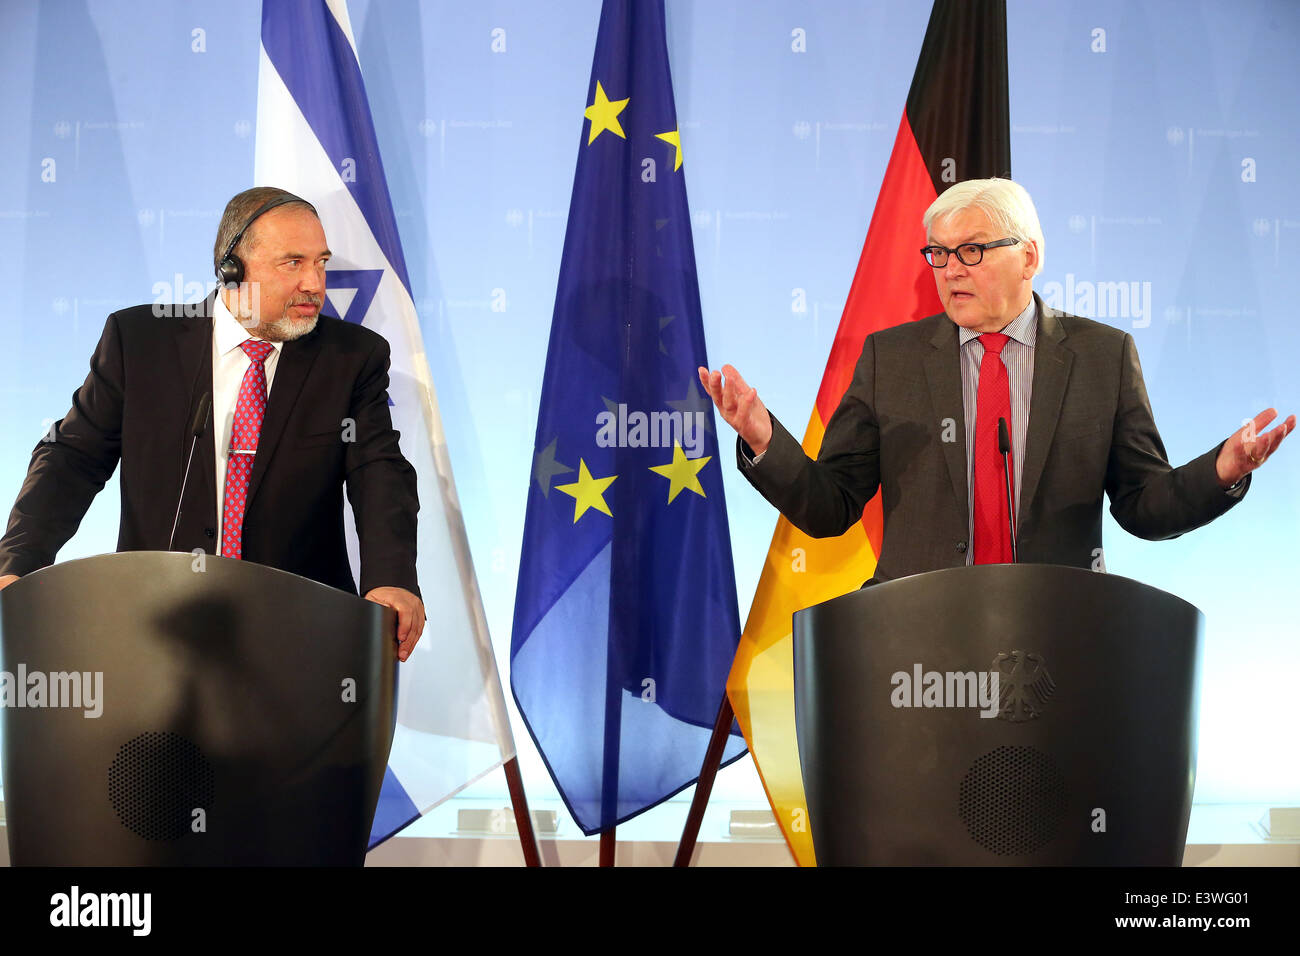 Berlin, Germany. 30th June, 2014. German Minister for Foreign Affairs Frank-Walter Steinmeier and Israeli Minister - Stock Image